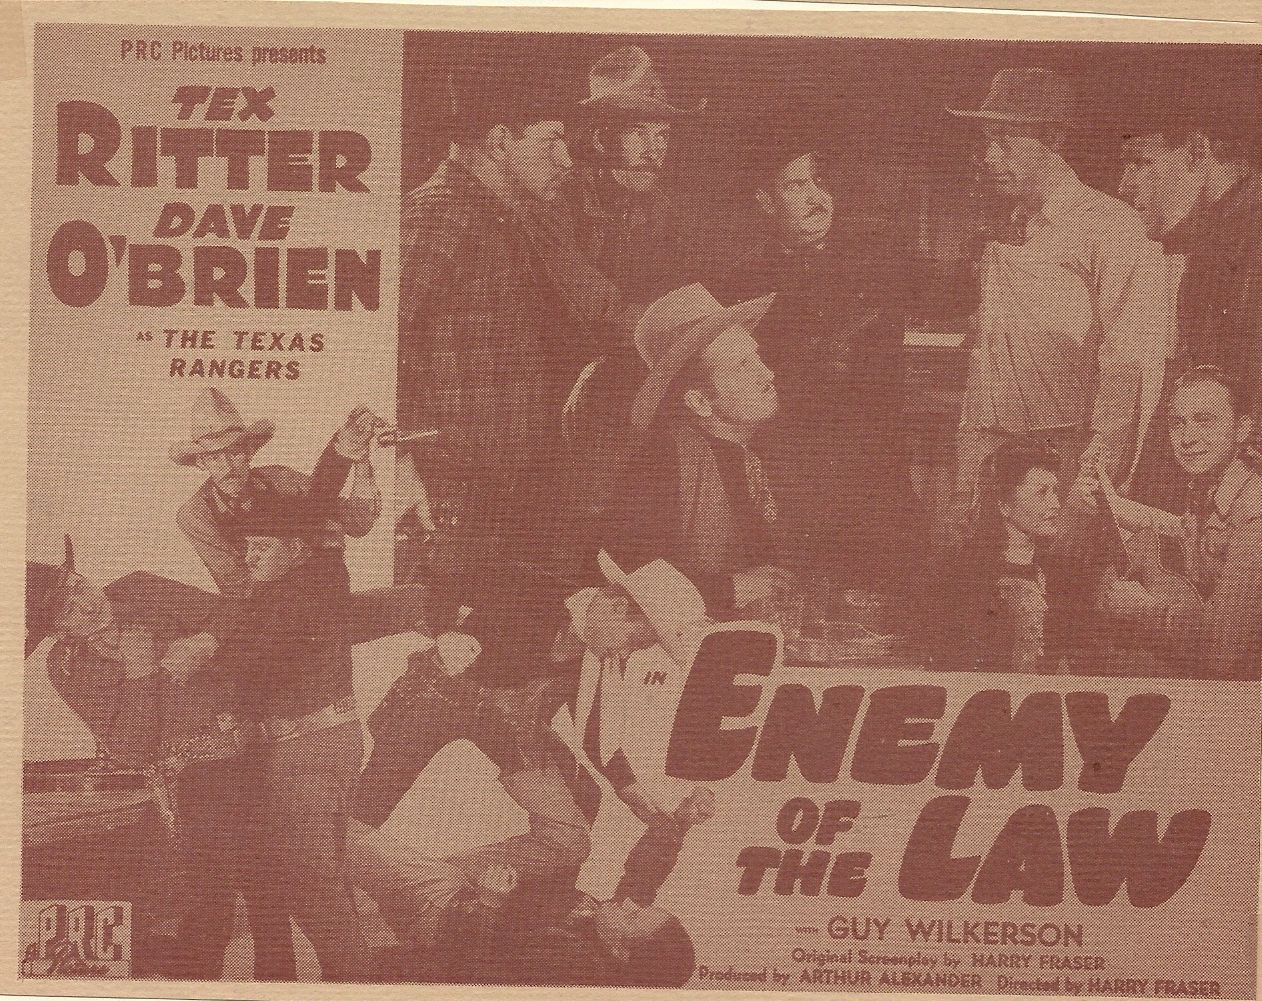 Frank Ellis, Kay Hughes, Jack Ingram, Charles King, Kermit Maynard, Dave O'Brien, Tex Ritter, and Guy Wilkerson in Enemy of the Law (1945)